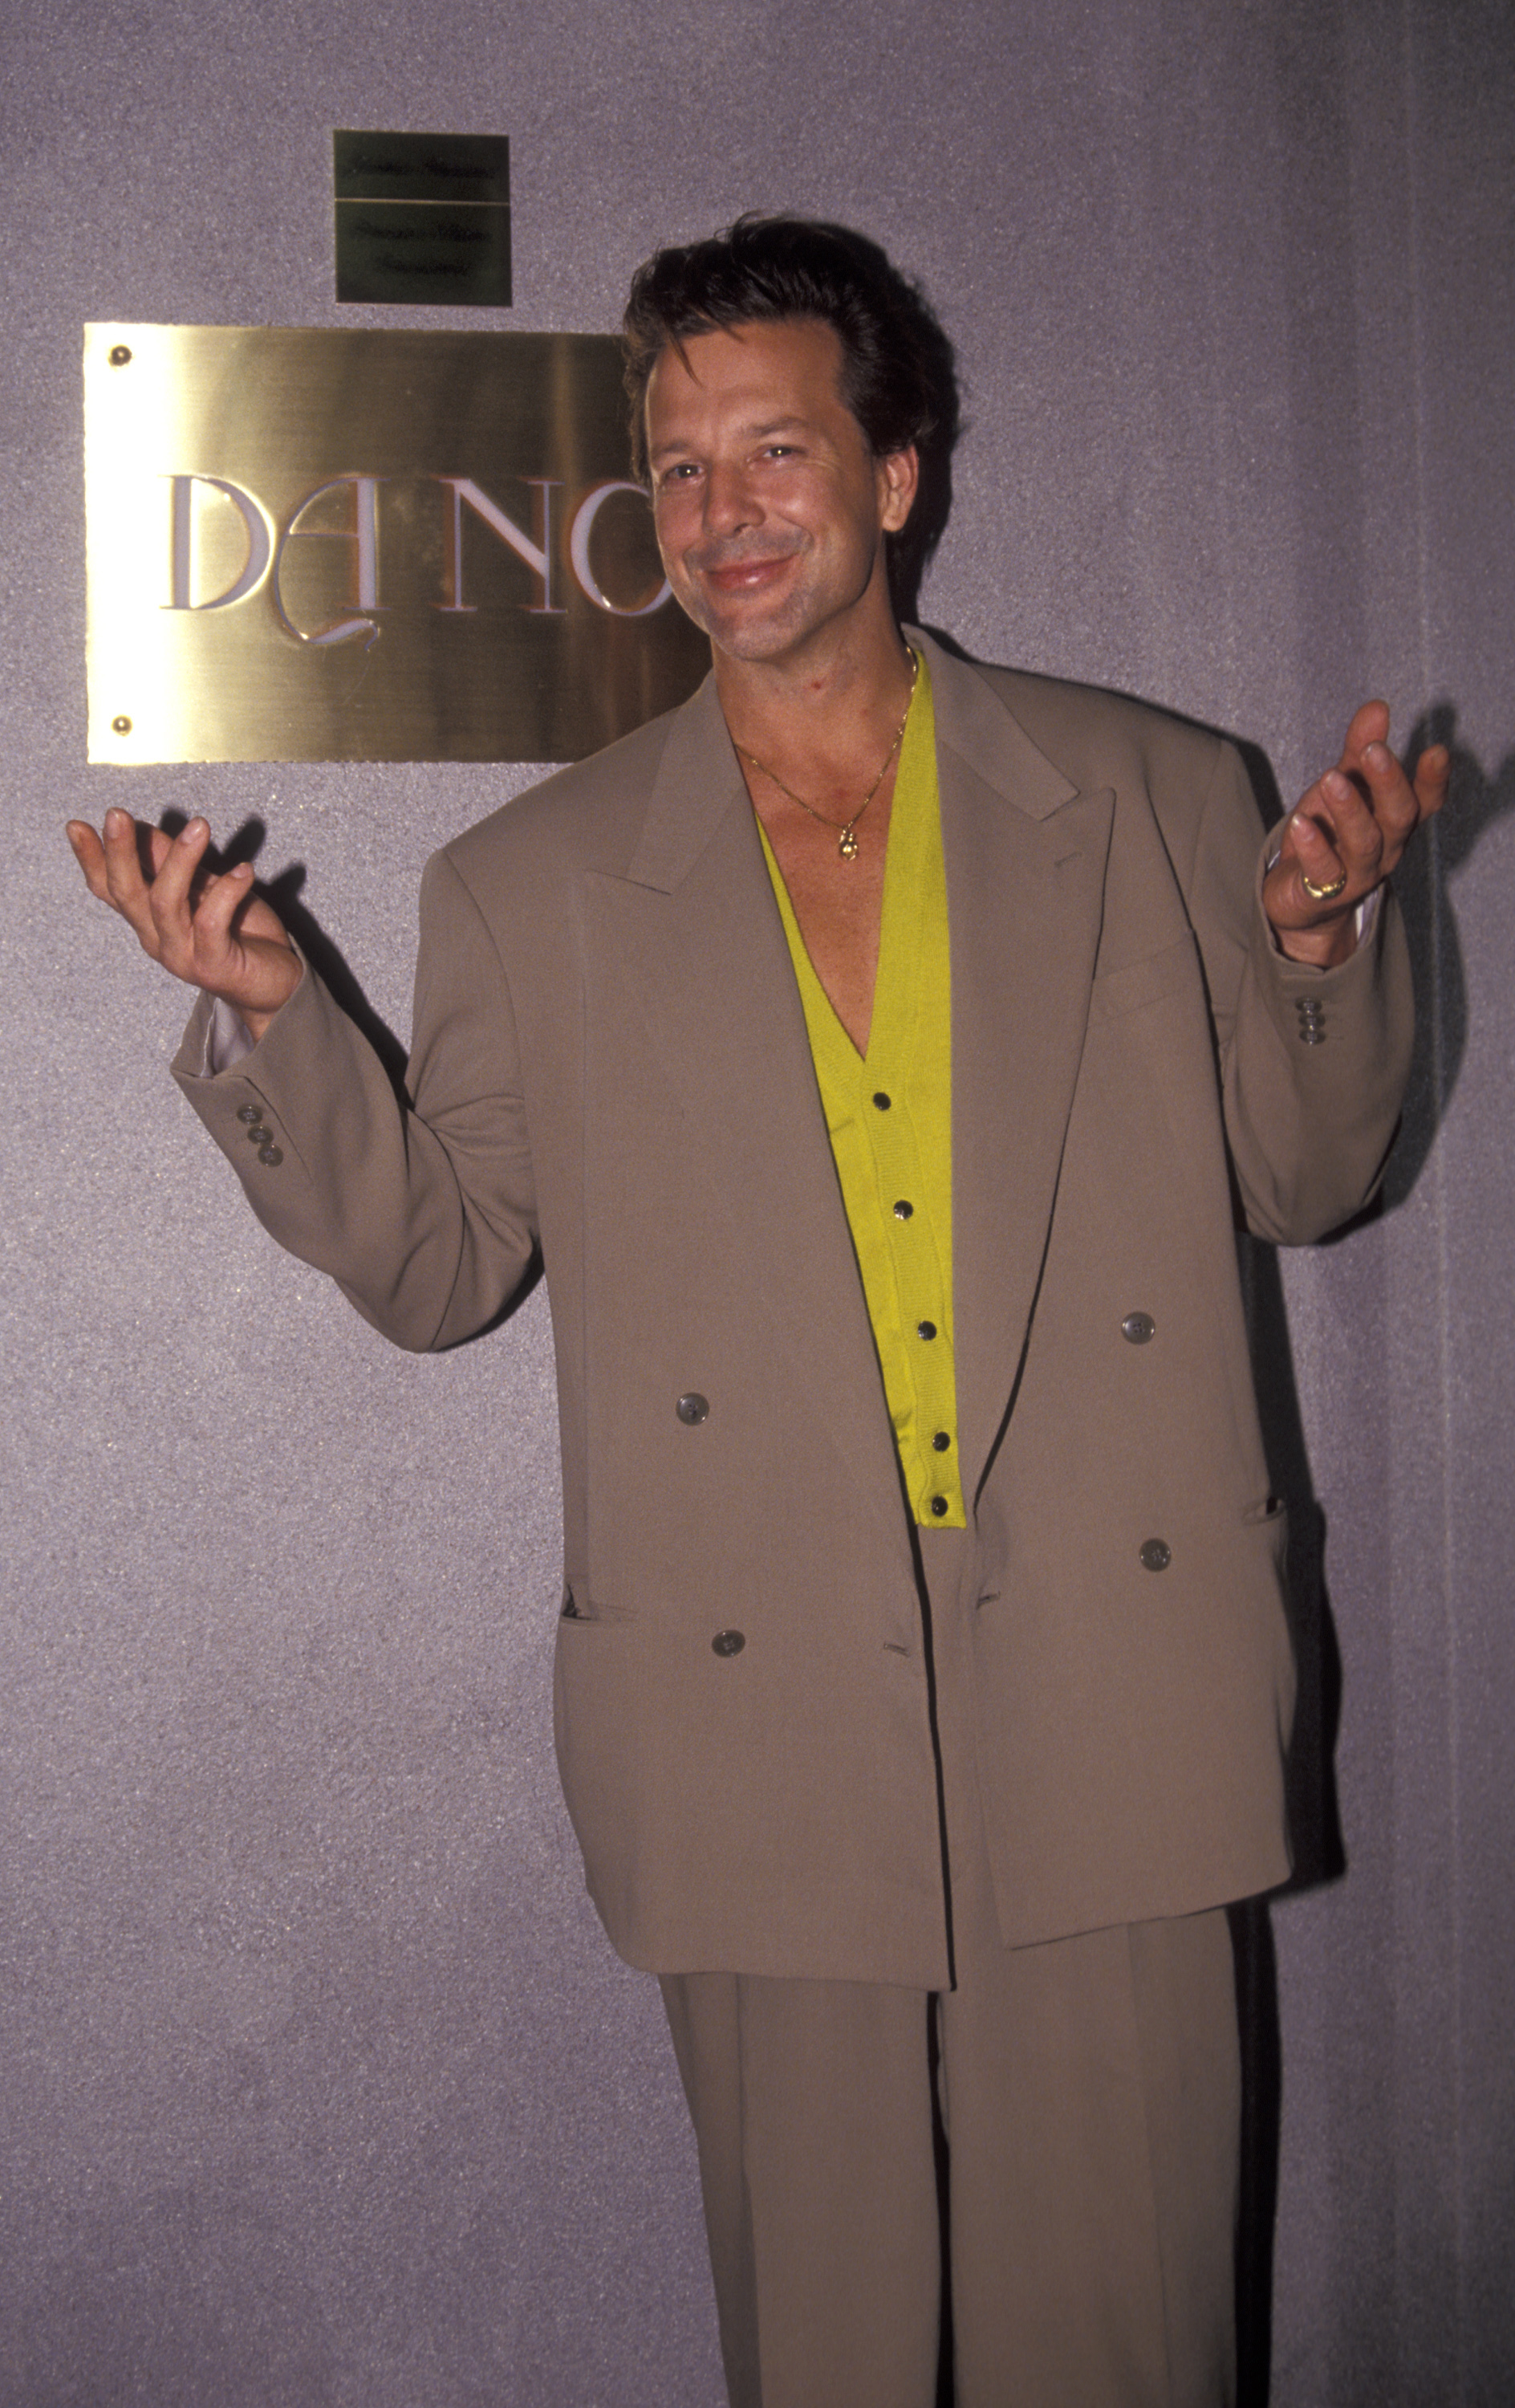 Actor Mickey Rourke being photographed on August 31, 1991 at Da Noi Restaurant in New York City, New York. КРЕДИТ